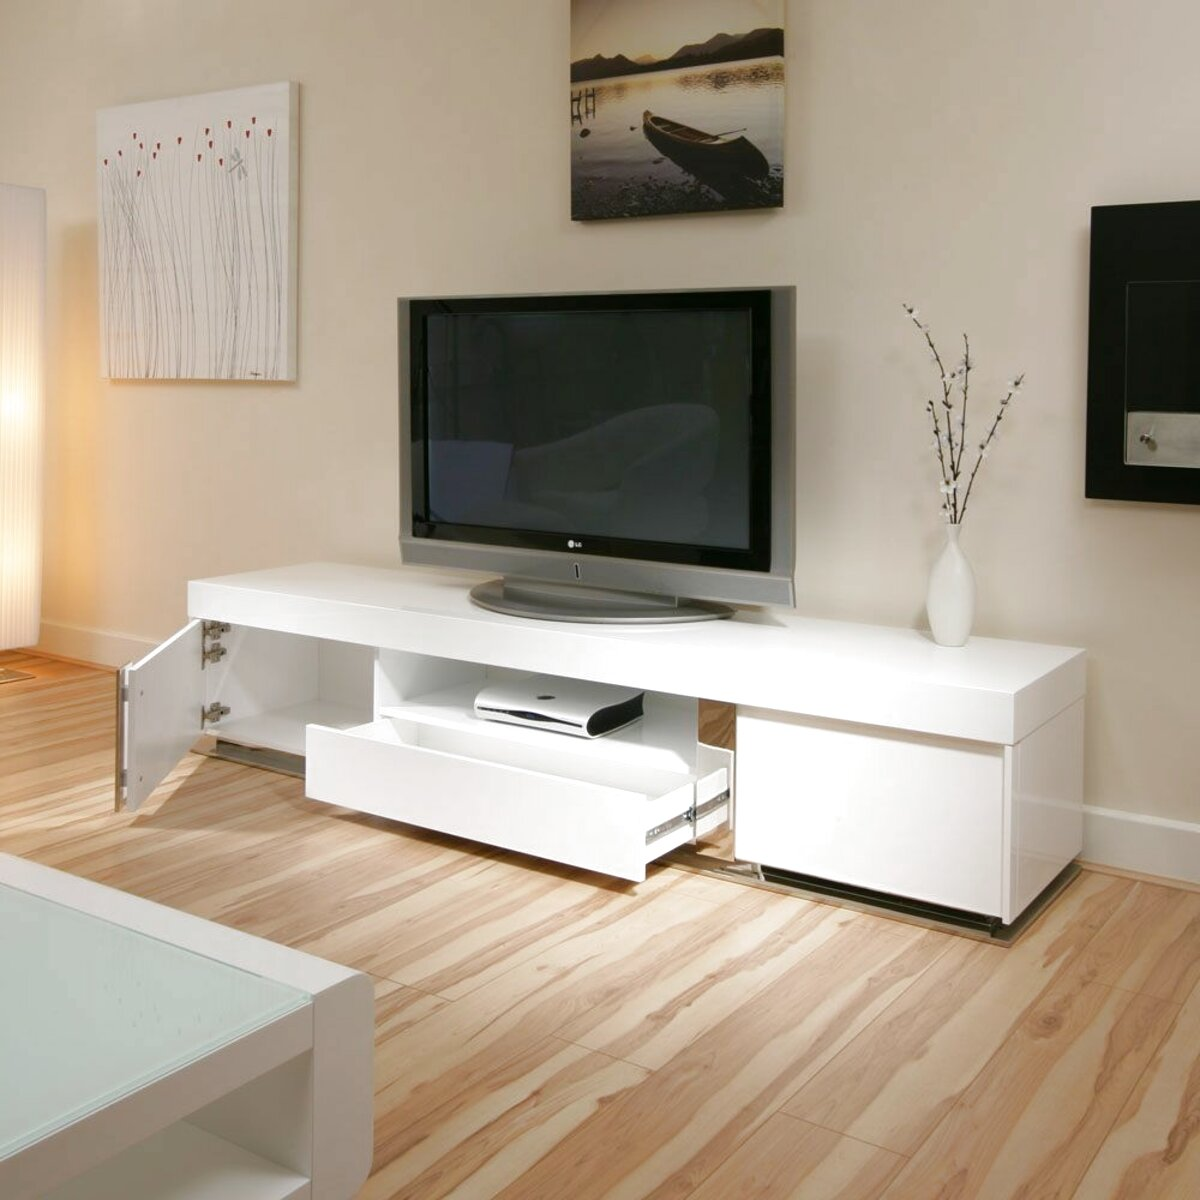 Ikea Besta Tv Stand For Sale In Uk View 33 Bargains